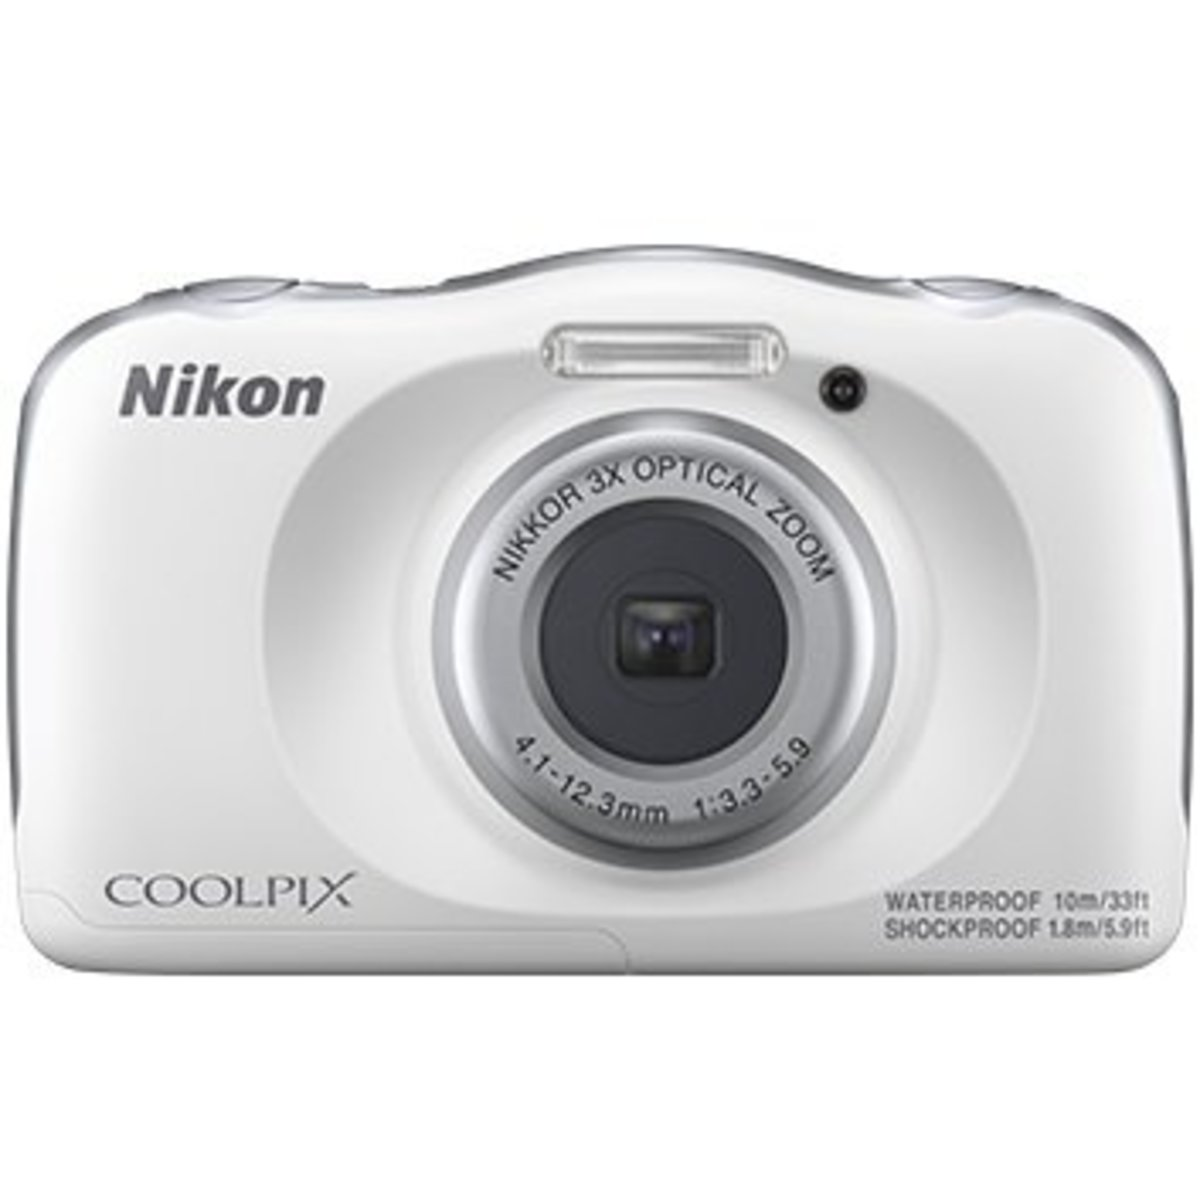 W150 Waterproof Digital Camera White Parallel imported